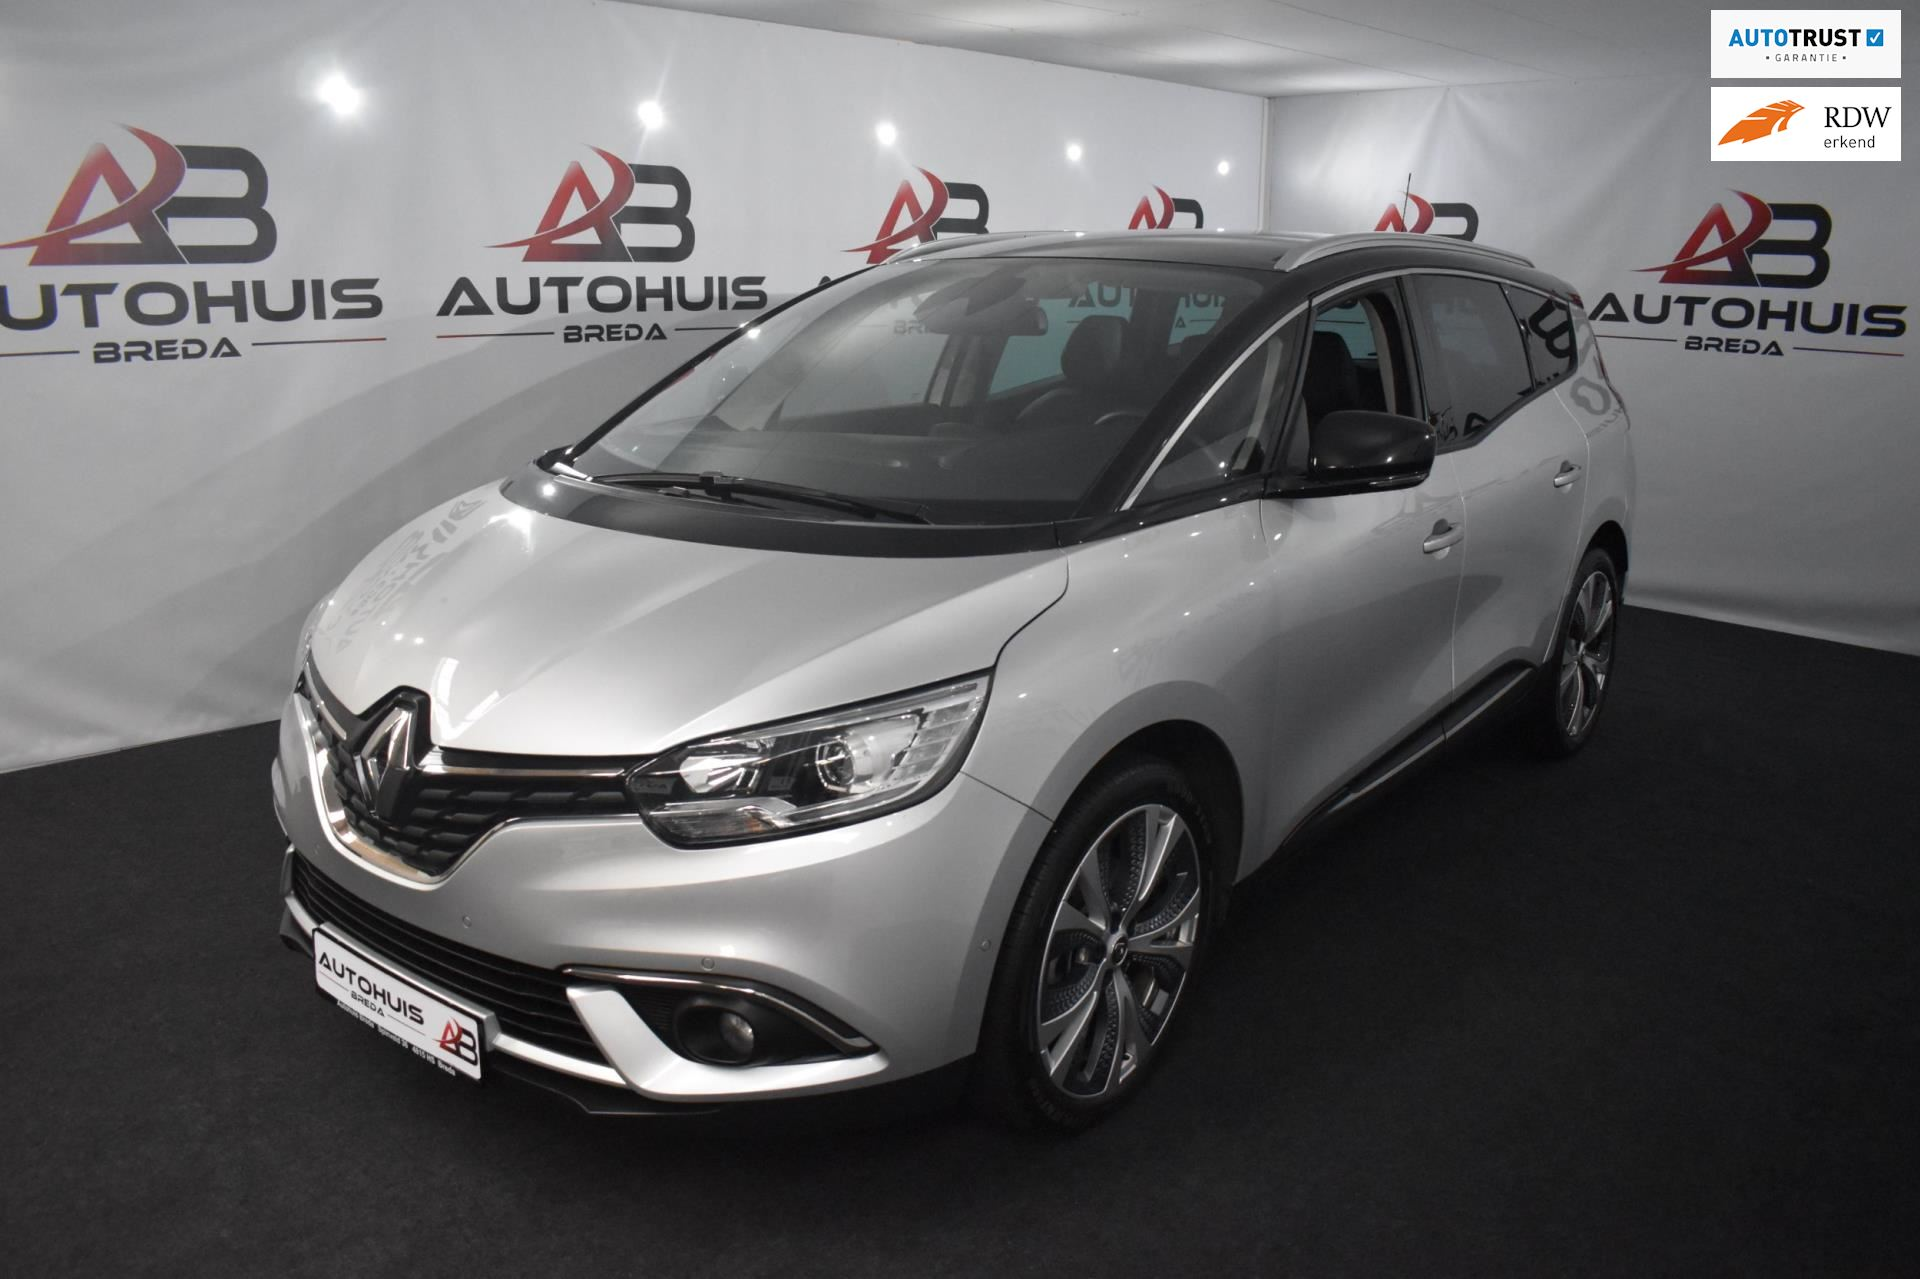 Renault Grand Scénic occasion - Autohuis Breda